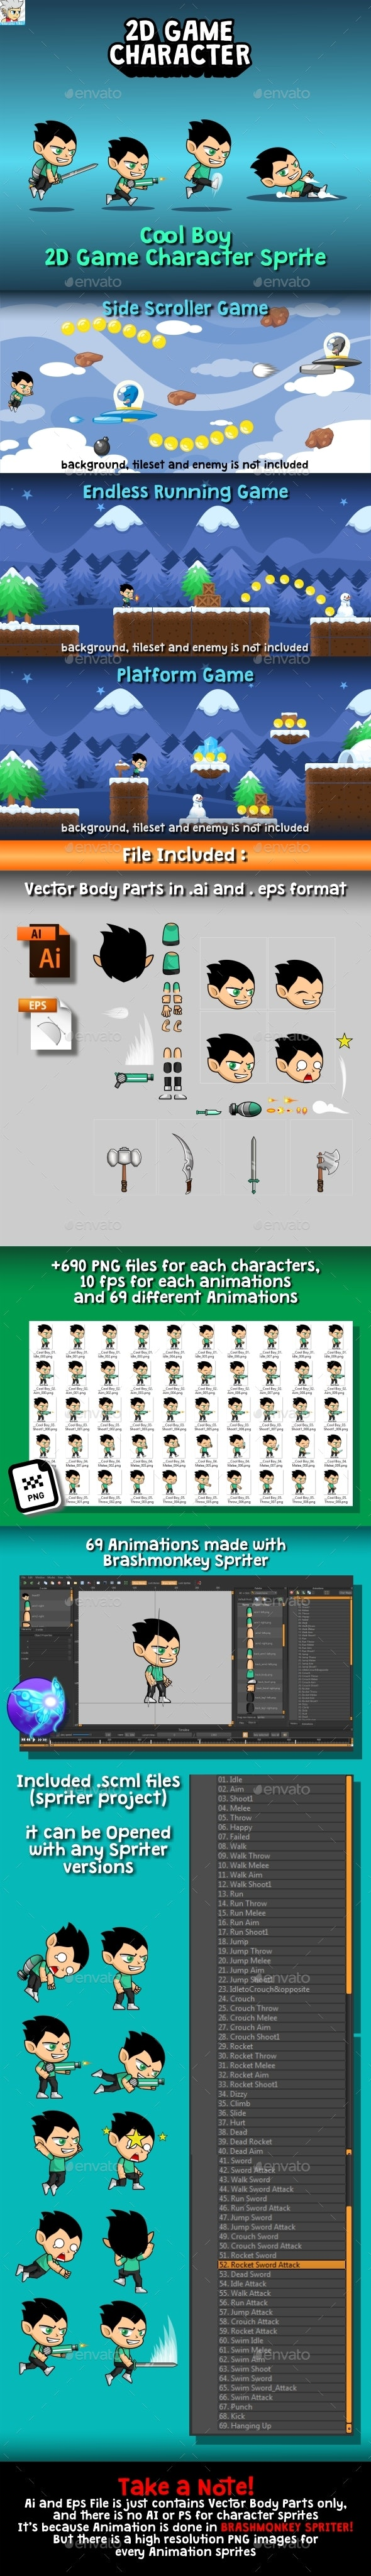 Cool Boy 2D Game Character Sprite - Sprites Game Assets